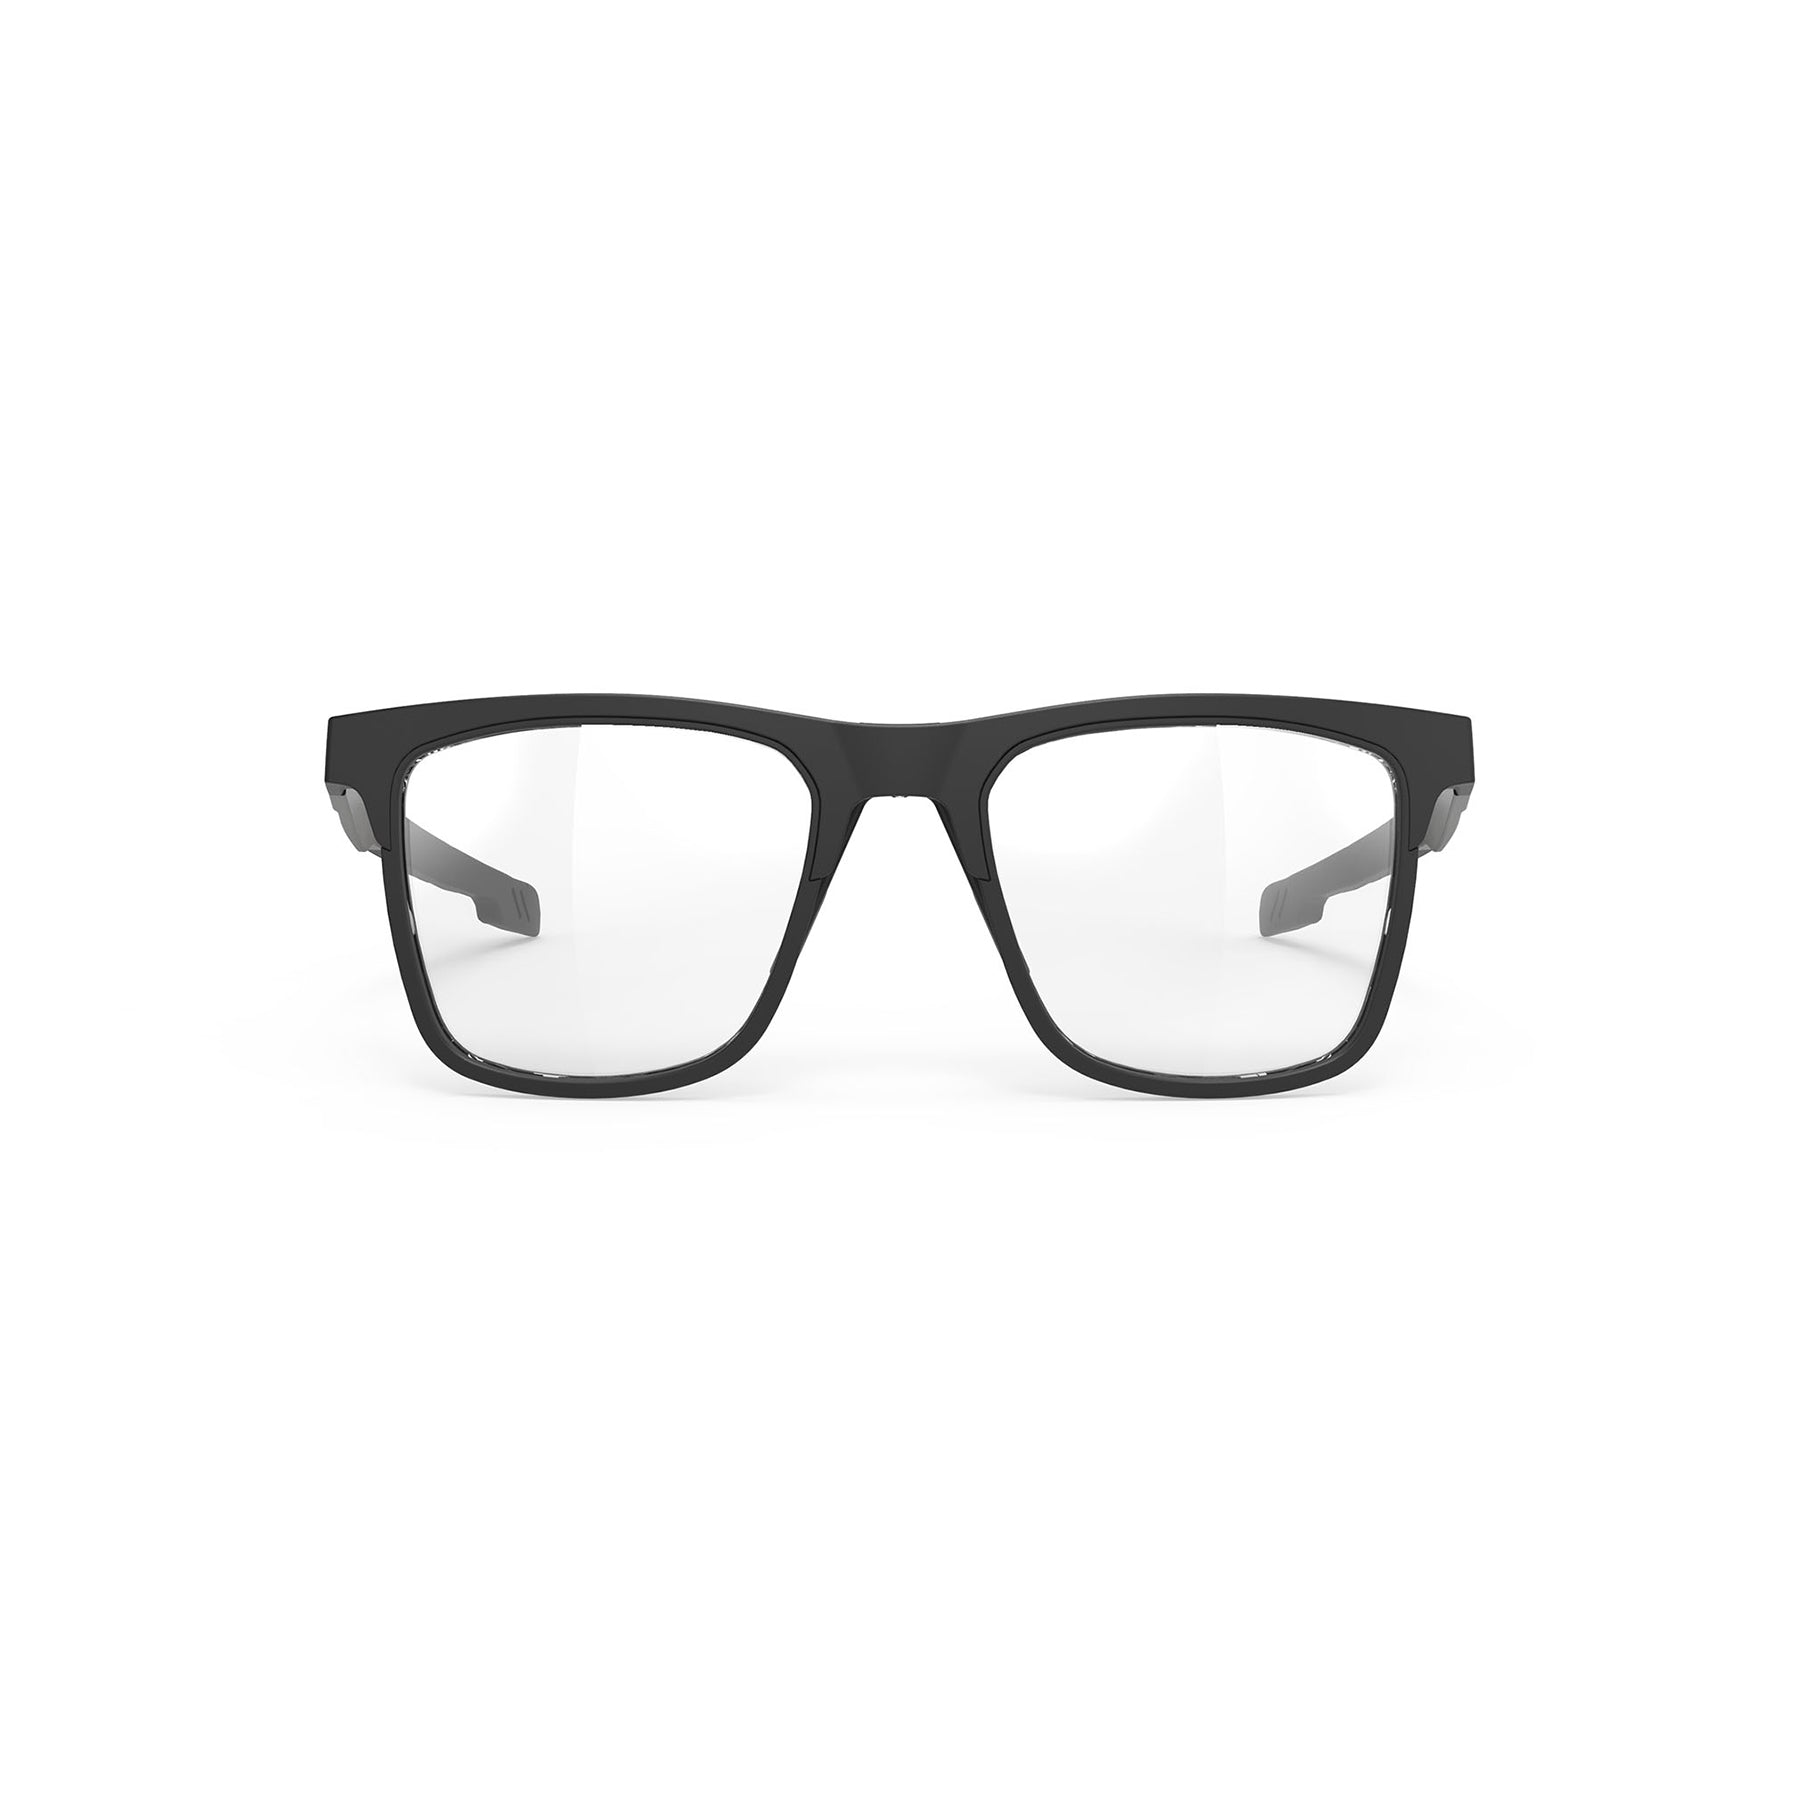 Rudy Project - Inkas XL - frame color: Matte Black - lens color: Full Rim - photo angle: Front View Variant Hover Image